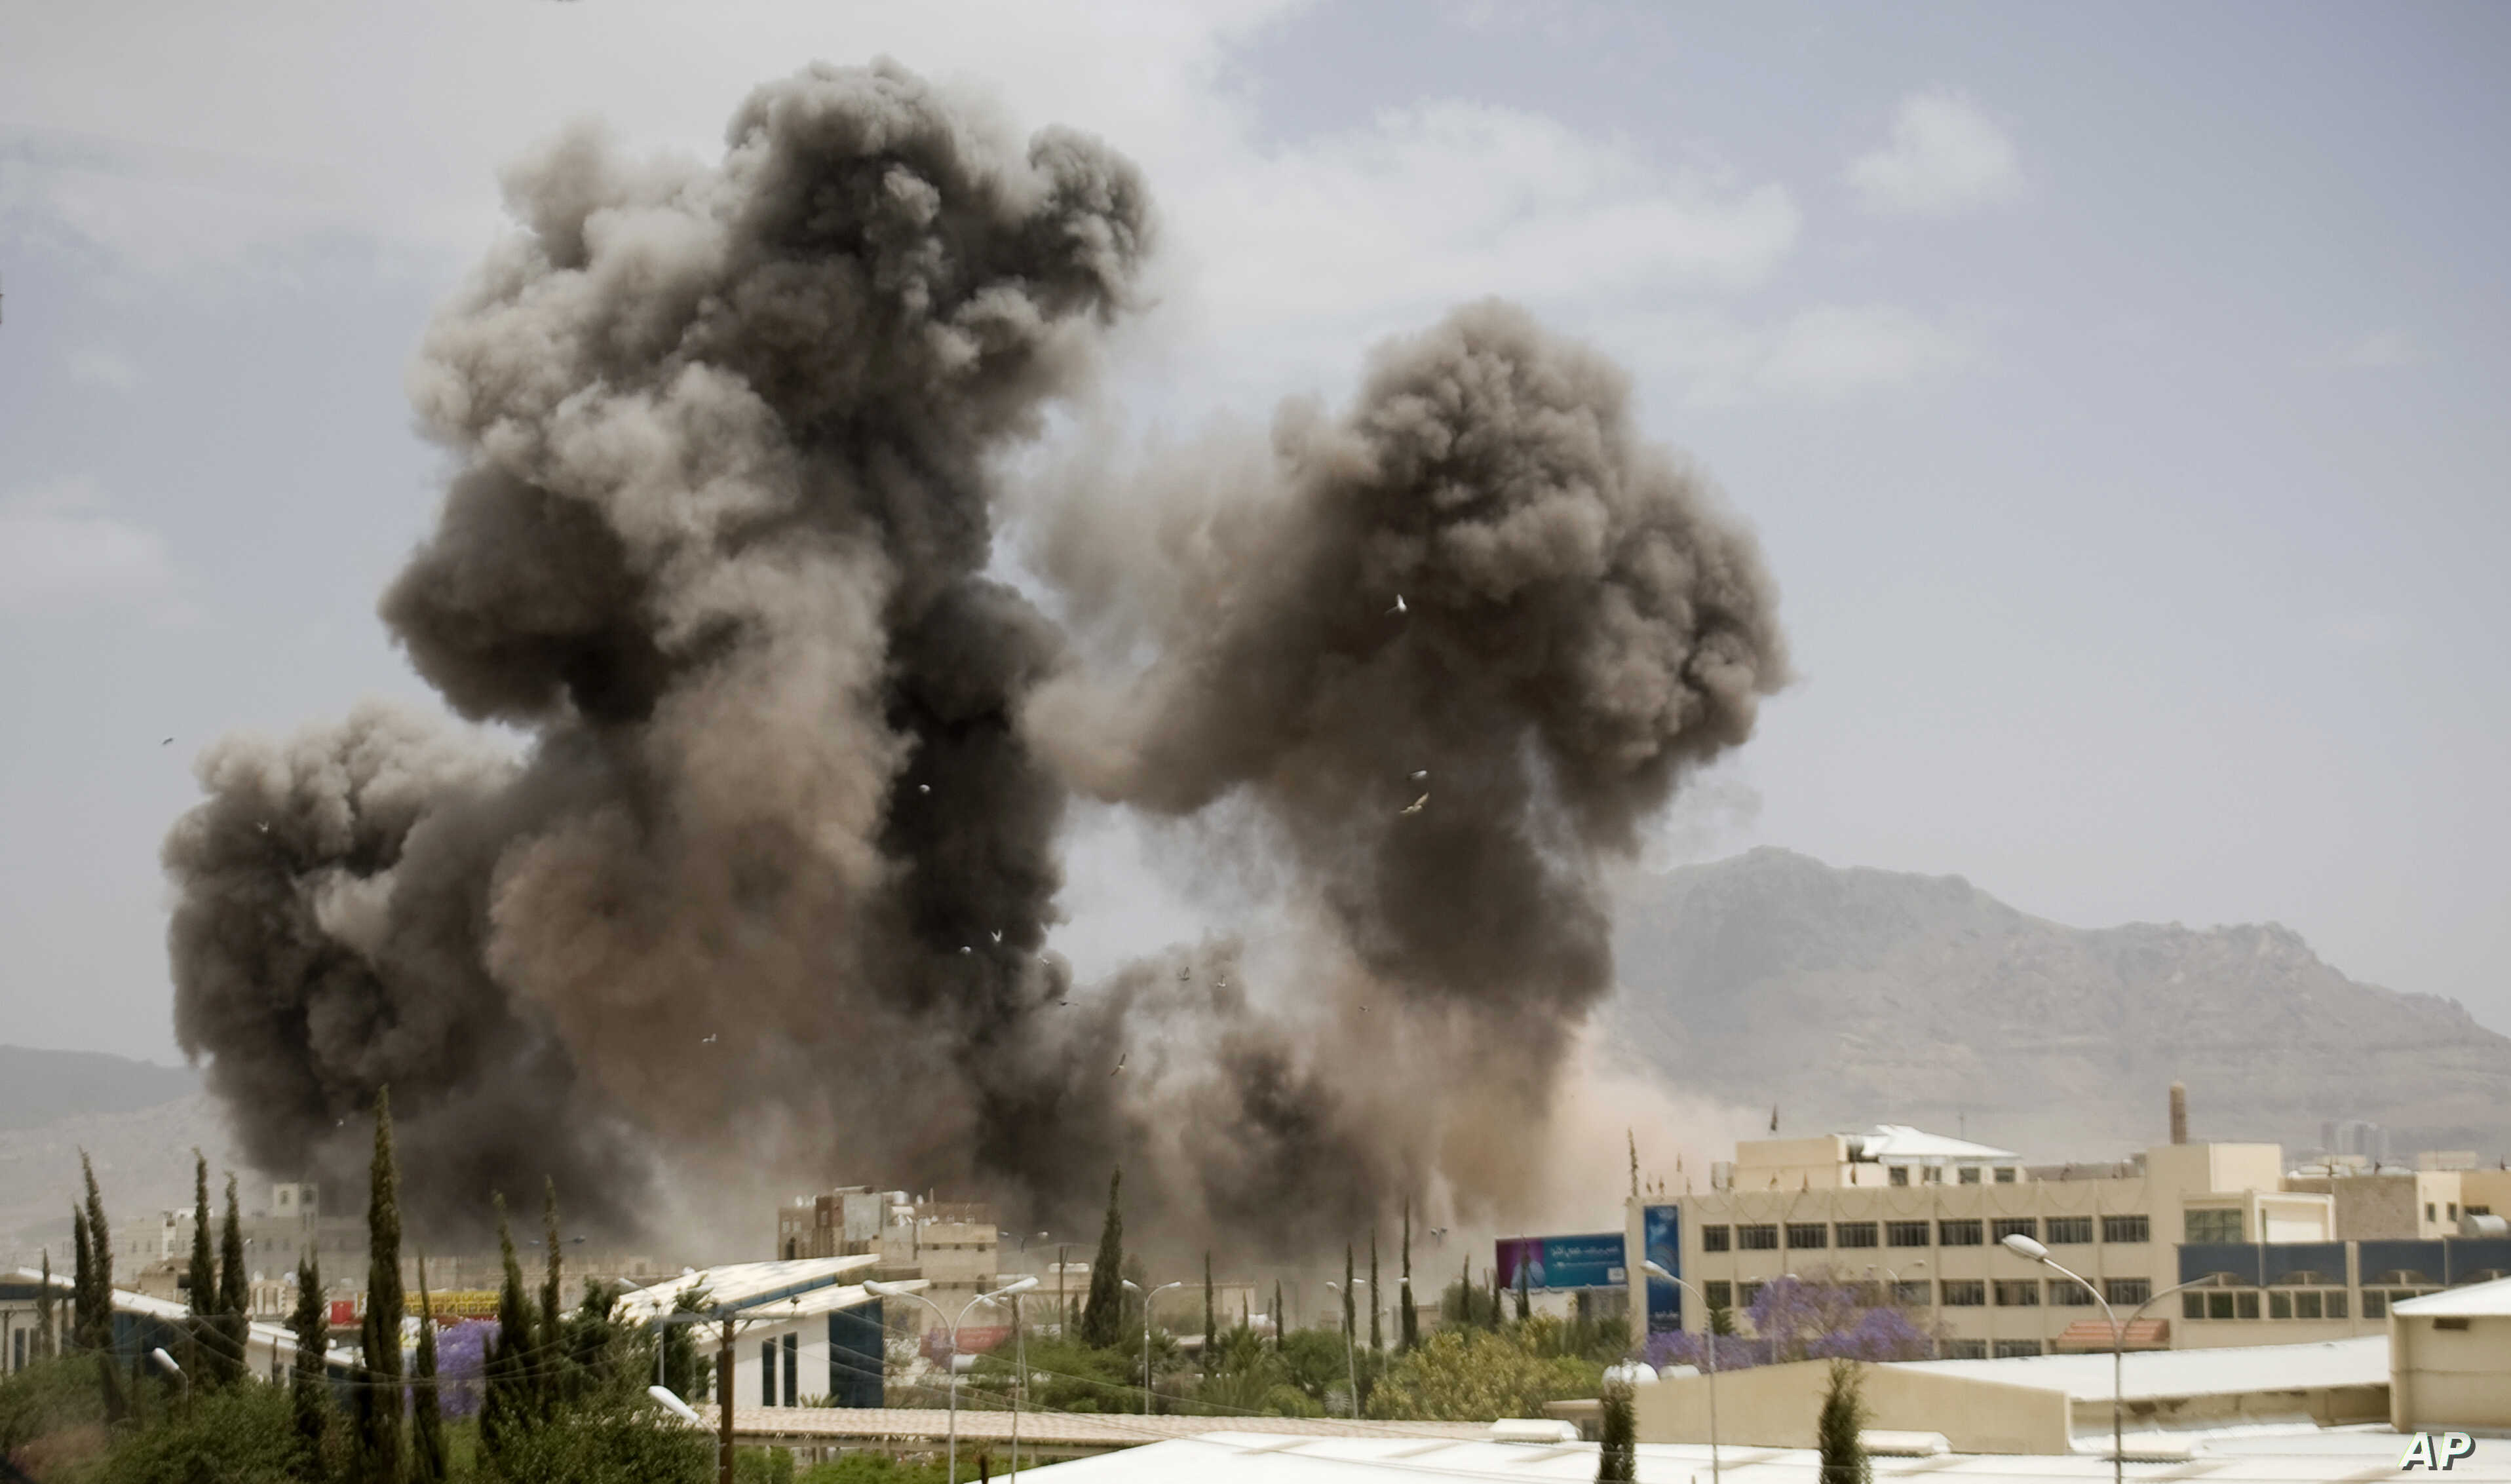 Smoke billows from a Saudi-led airstrike on Sanaa, Yemen, Wednesday, April 8, 2015. A state-run broadcaster in Iran is reporting that the Islamic Republic has sent a navy destroyer and another vessel to waters near Yemen amid a Saudi-led airstrike ca